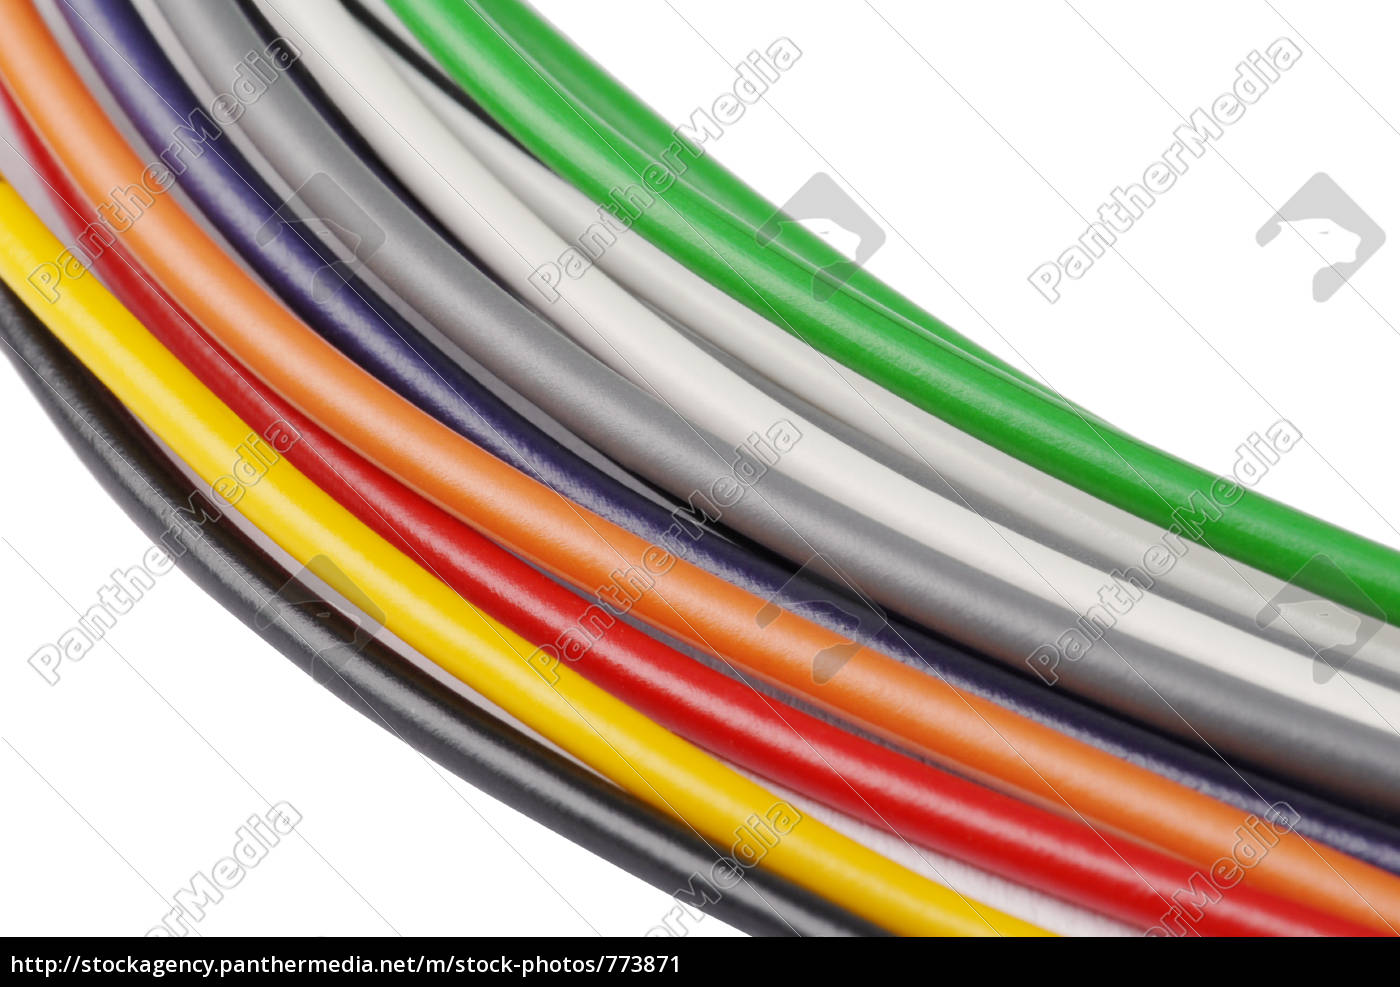 cable - 773871